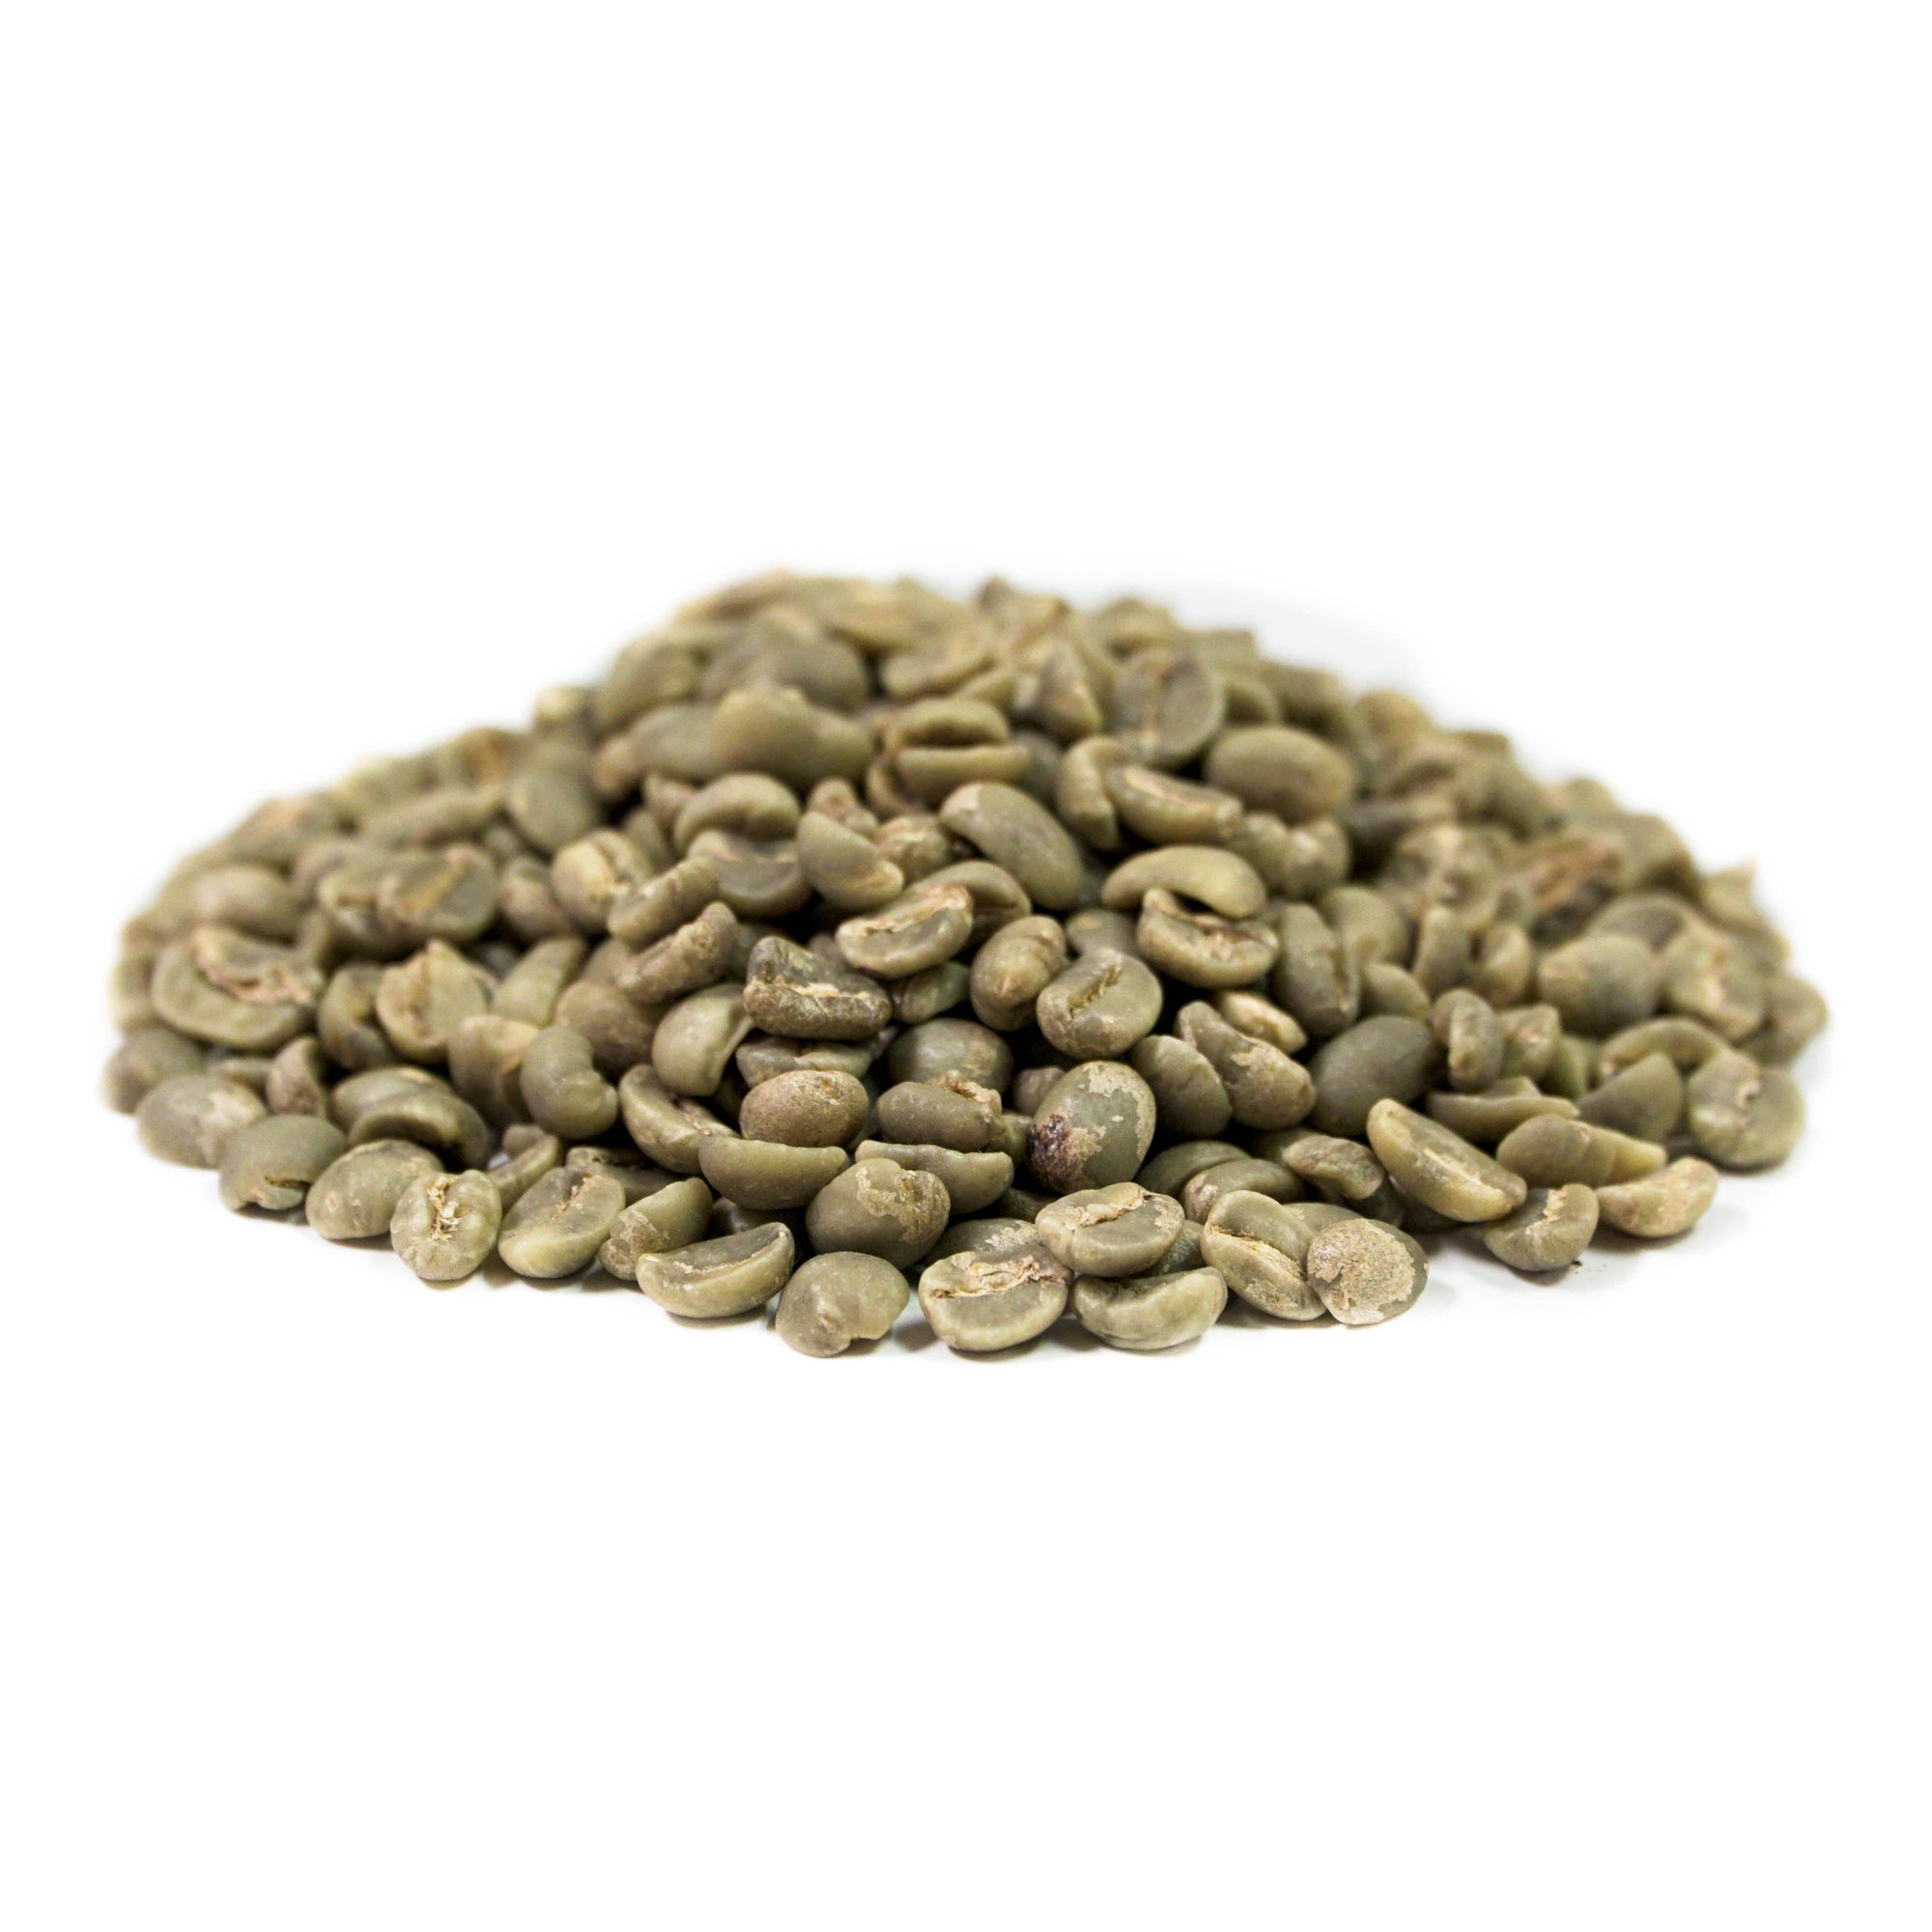 Rwandan Unroasted Green Coffee Beans